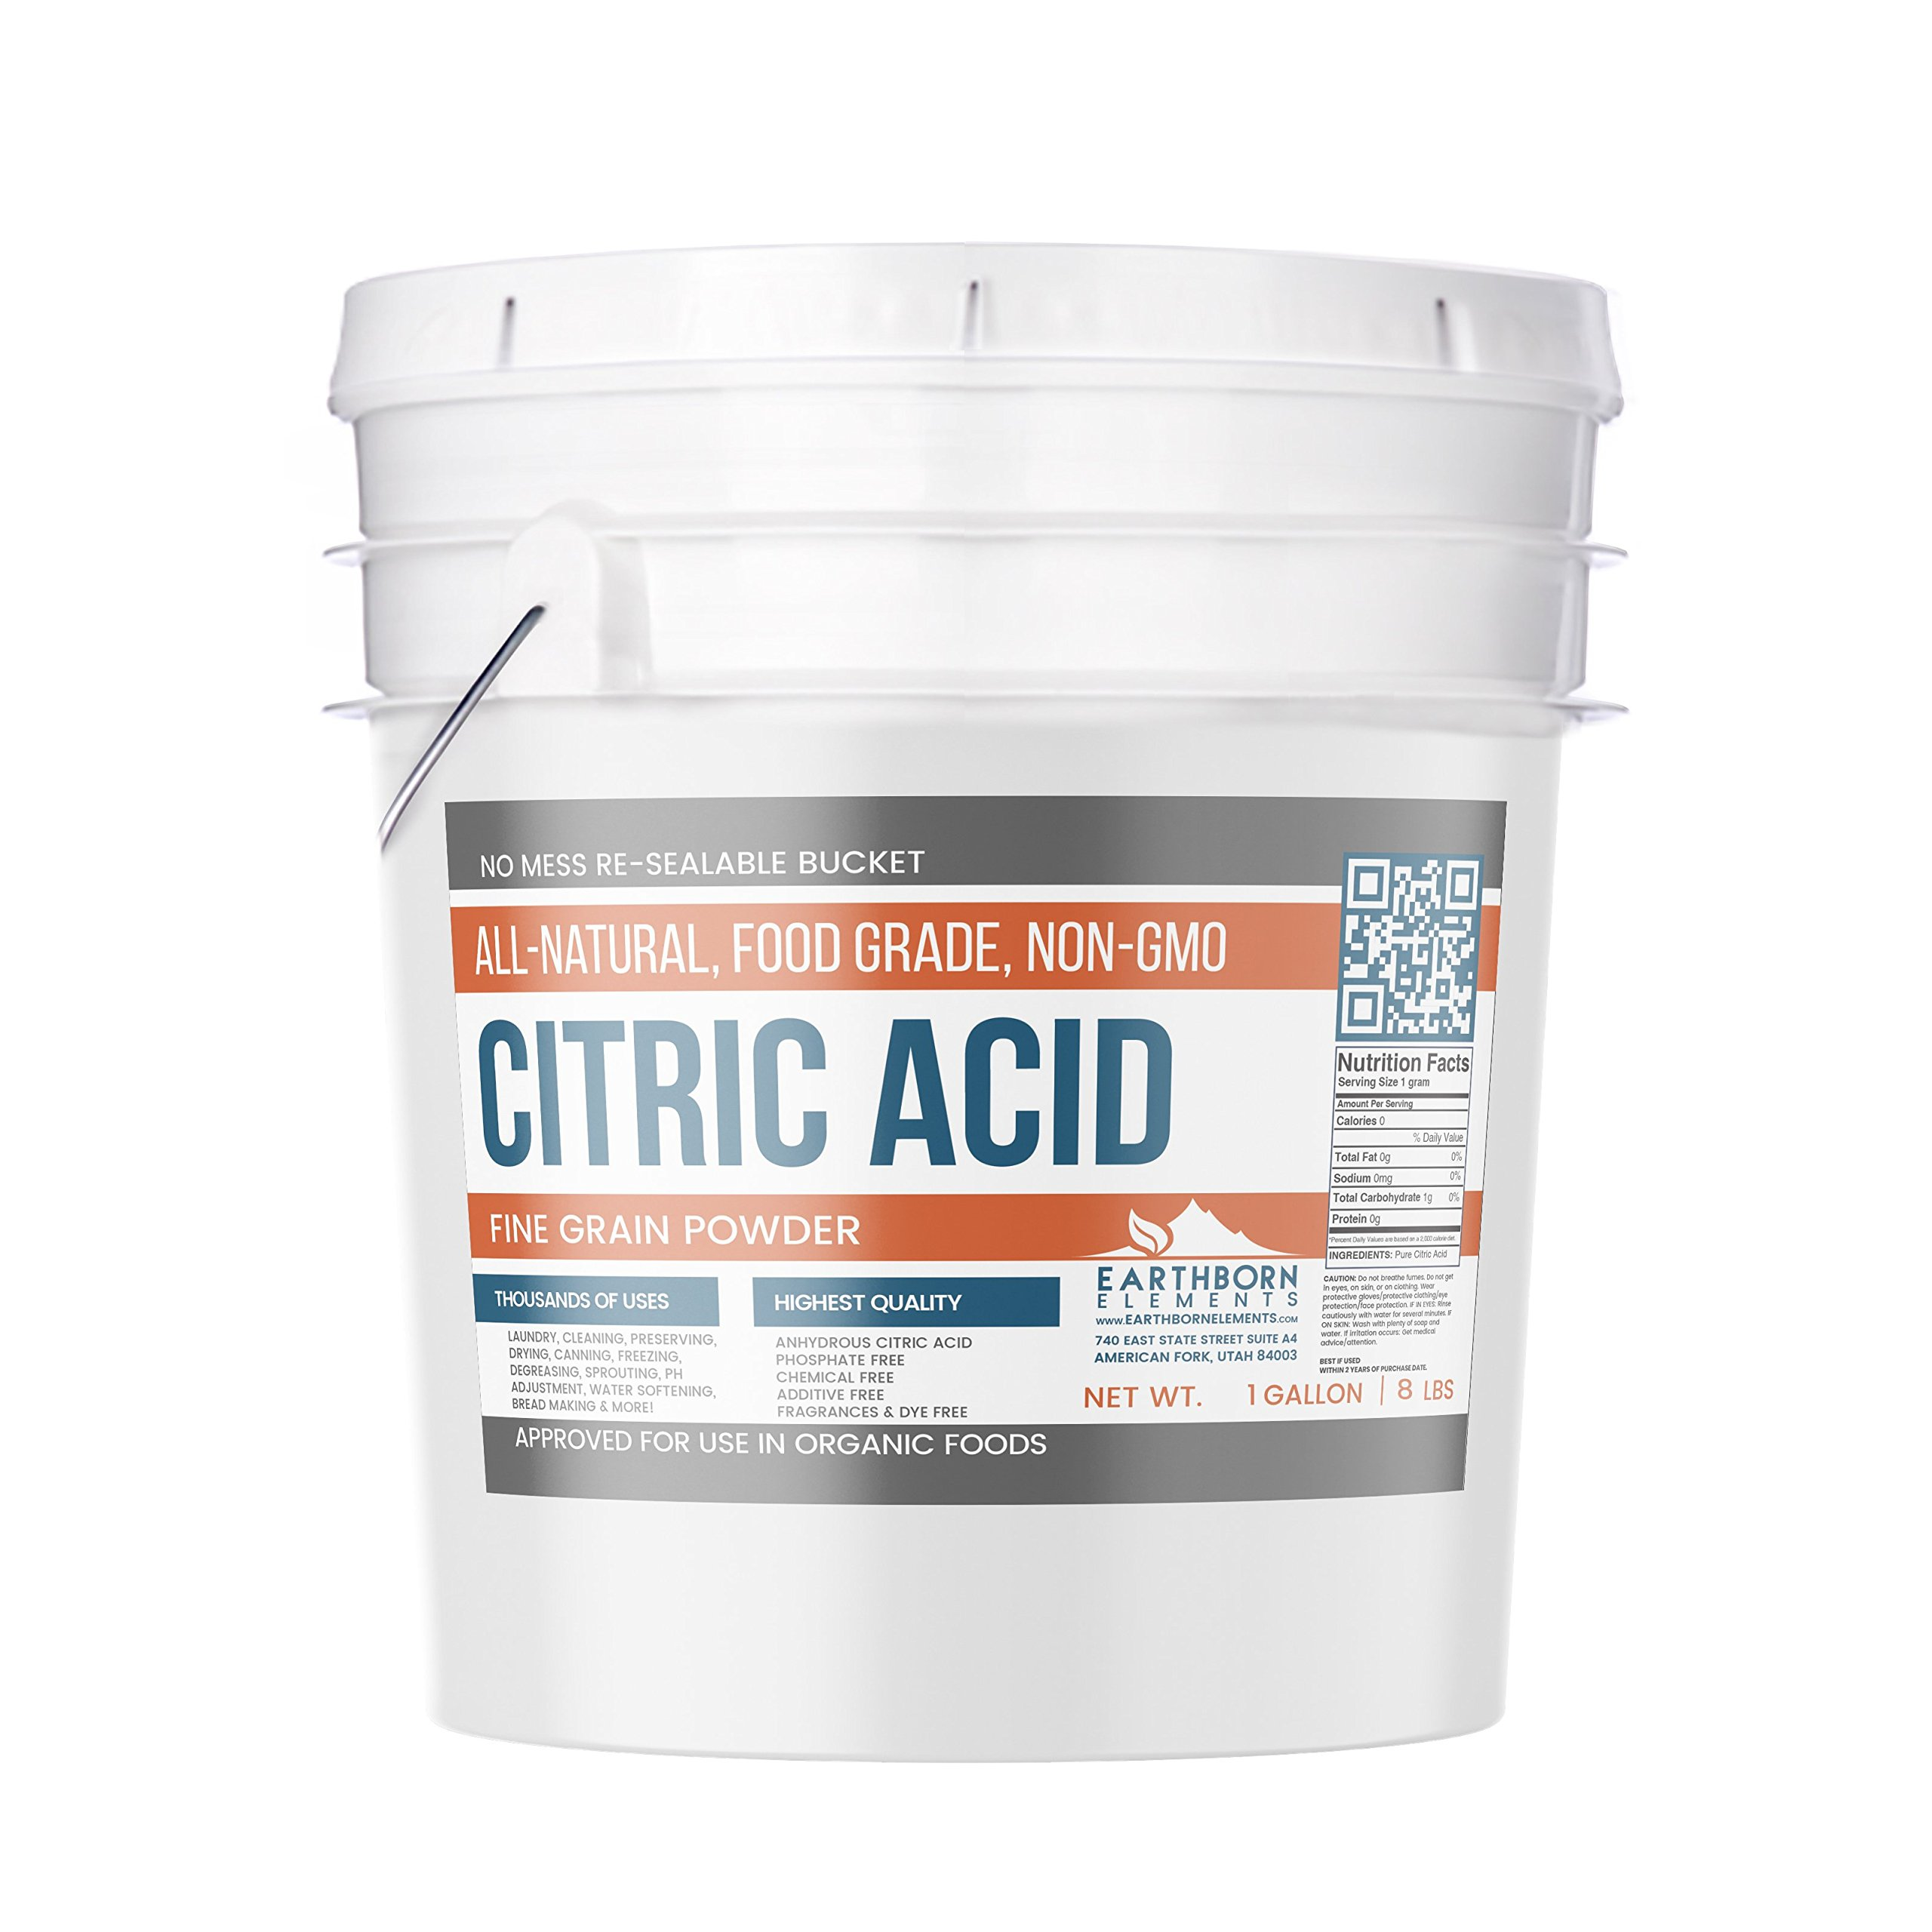 Citric Acid (1 Gallon (8 lbs.)) by Earthborn Elements, Resealable Bucket, All-Natural, Highest Quality, Pure, Food Grade, Non-GMO, Chemical Free